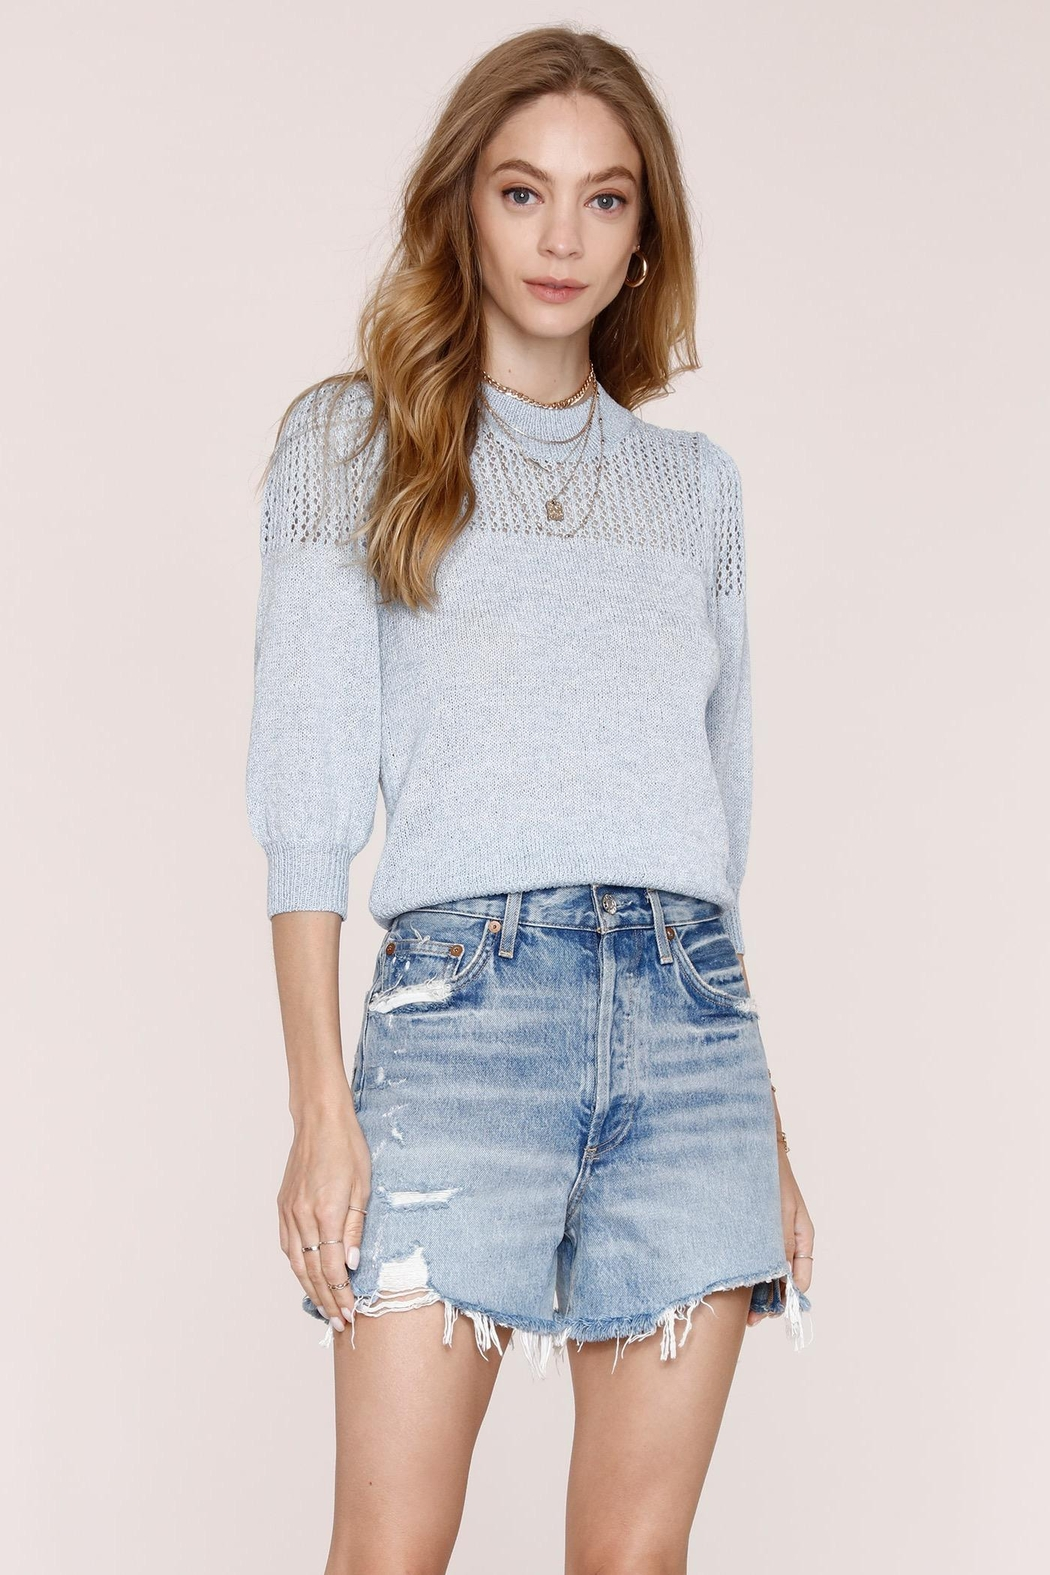 Heartloom Joelle 3/4 Sleeve Sweater - Front Cropped Image